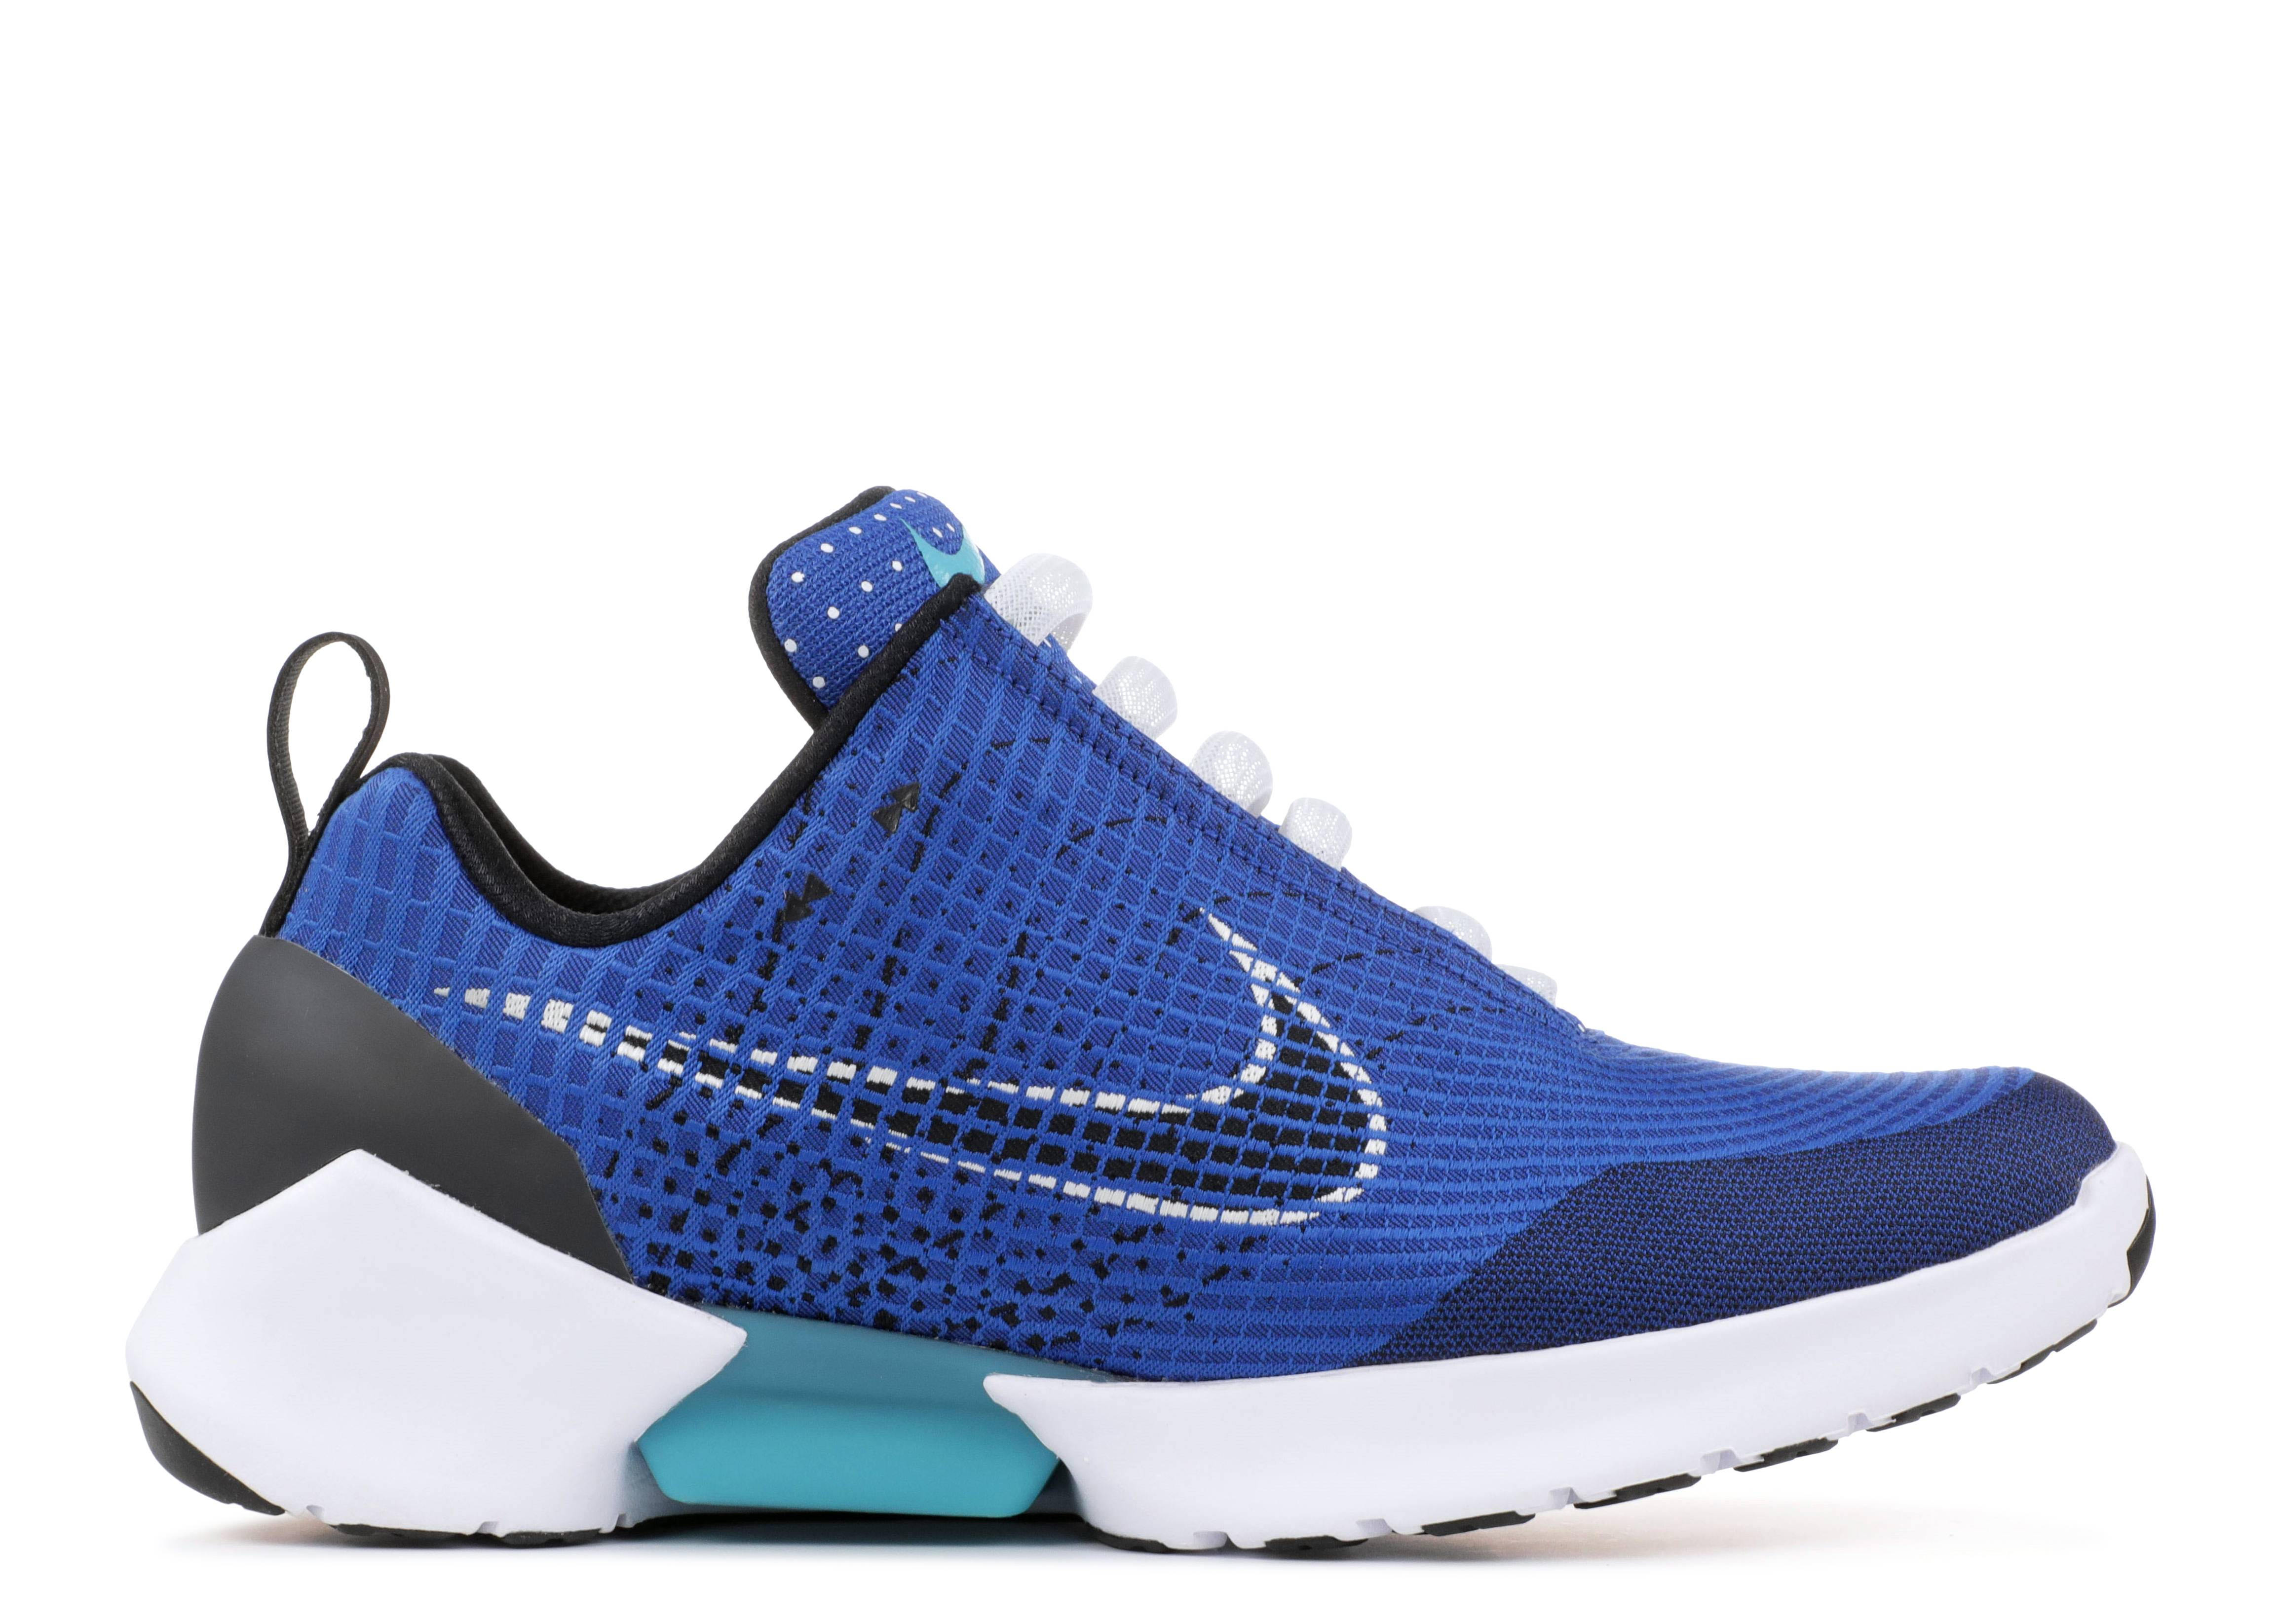 301d16d6707c Nike Hyper Adapt 1.0 - Nike - 843871 400 - sport royal black-white ...